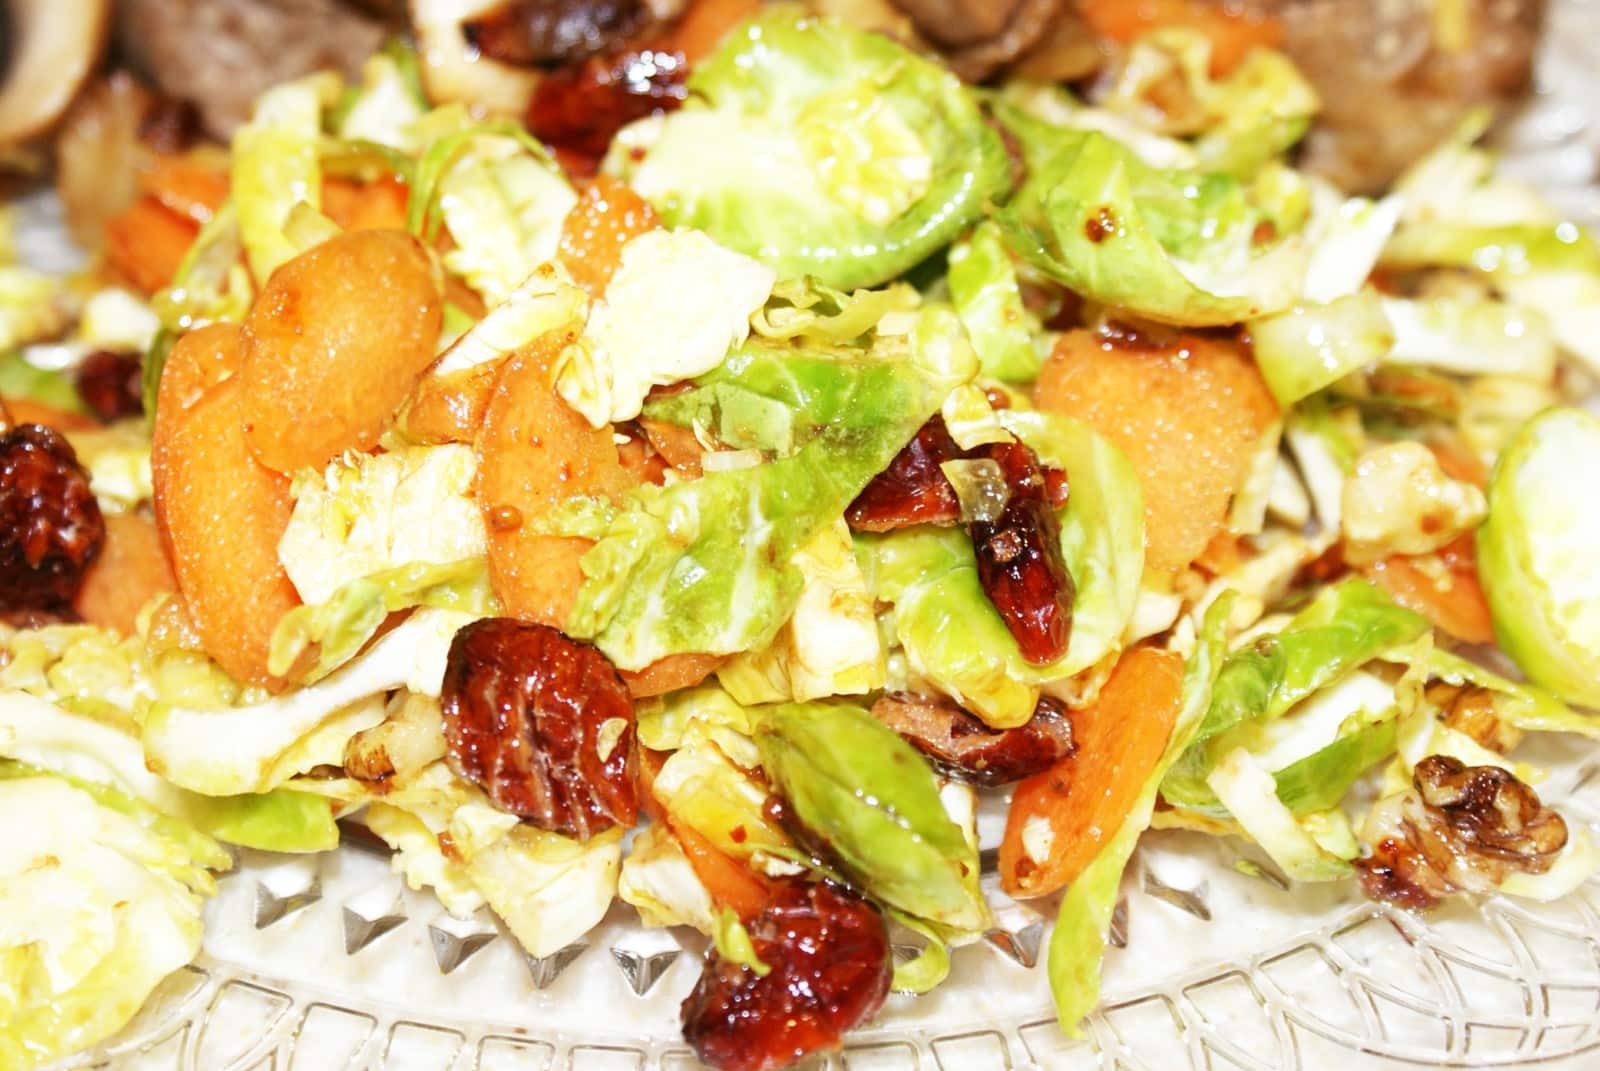 Brussel sprout salad with cranberries